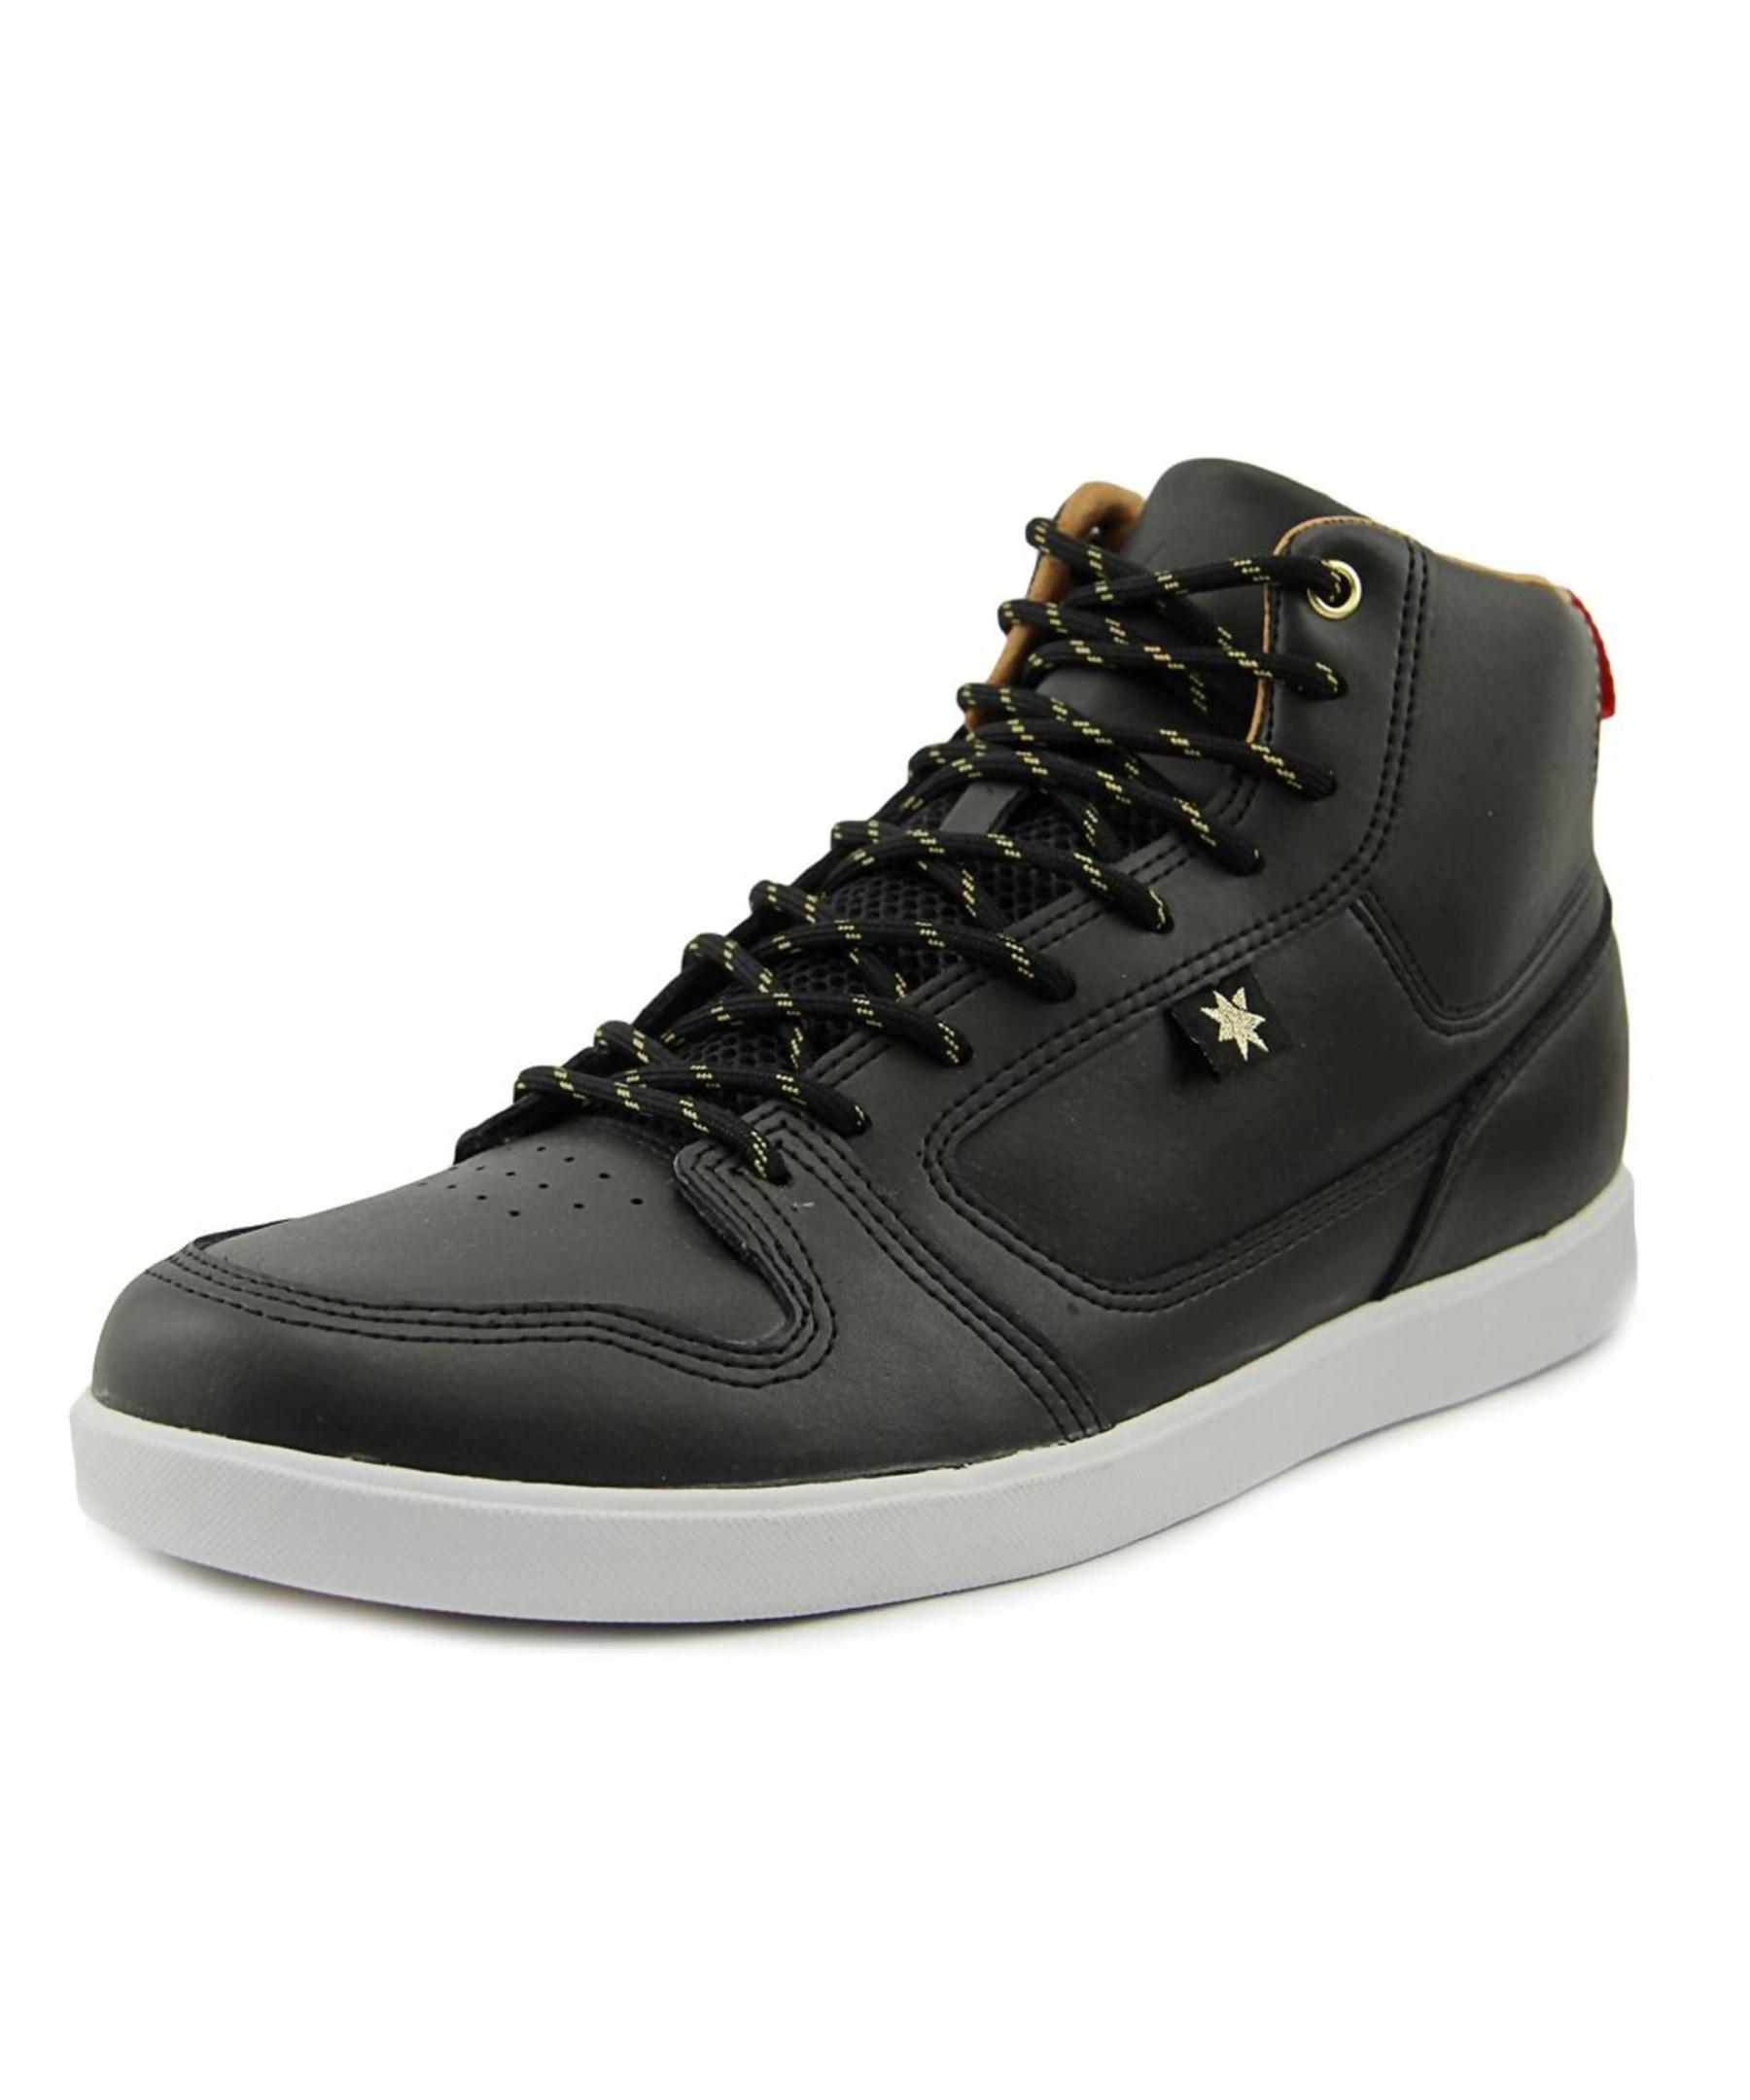 dc shoes landau high unrestricted toe leather